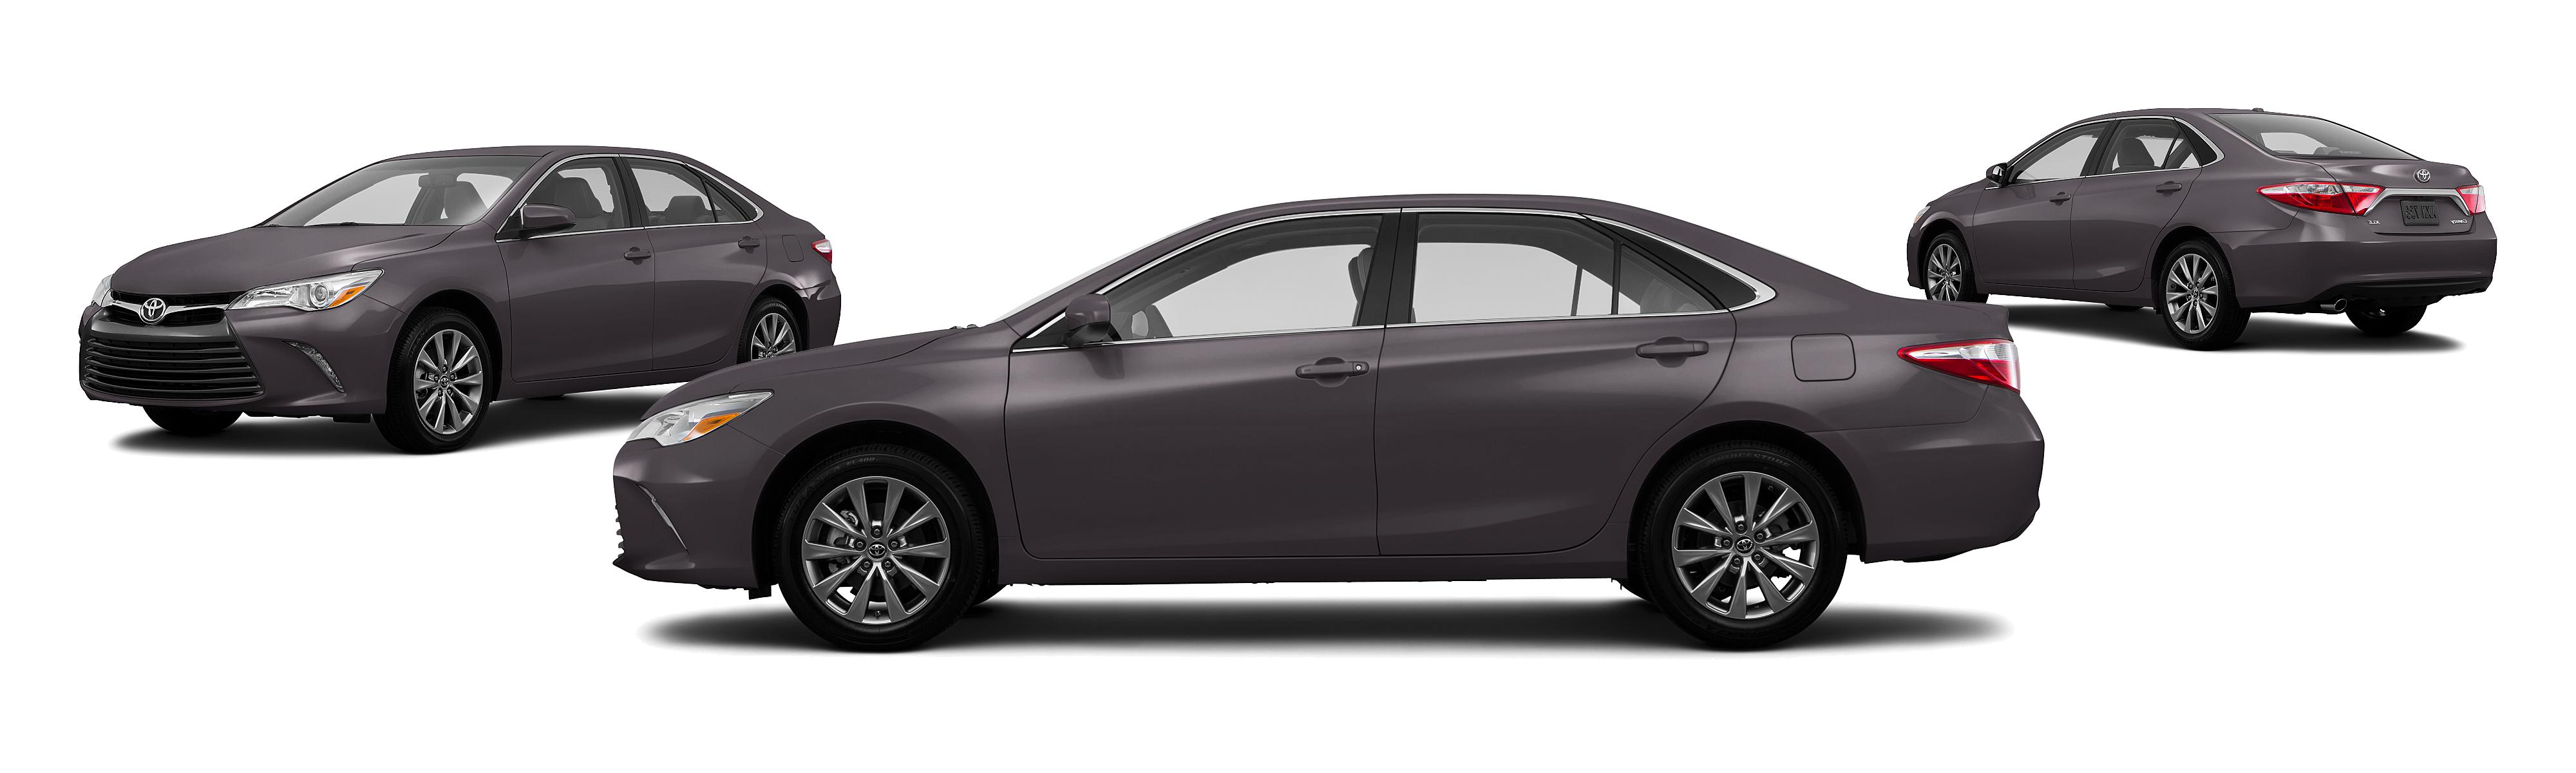 camry toyota pictures xle wallpaper picture